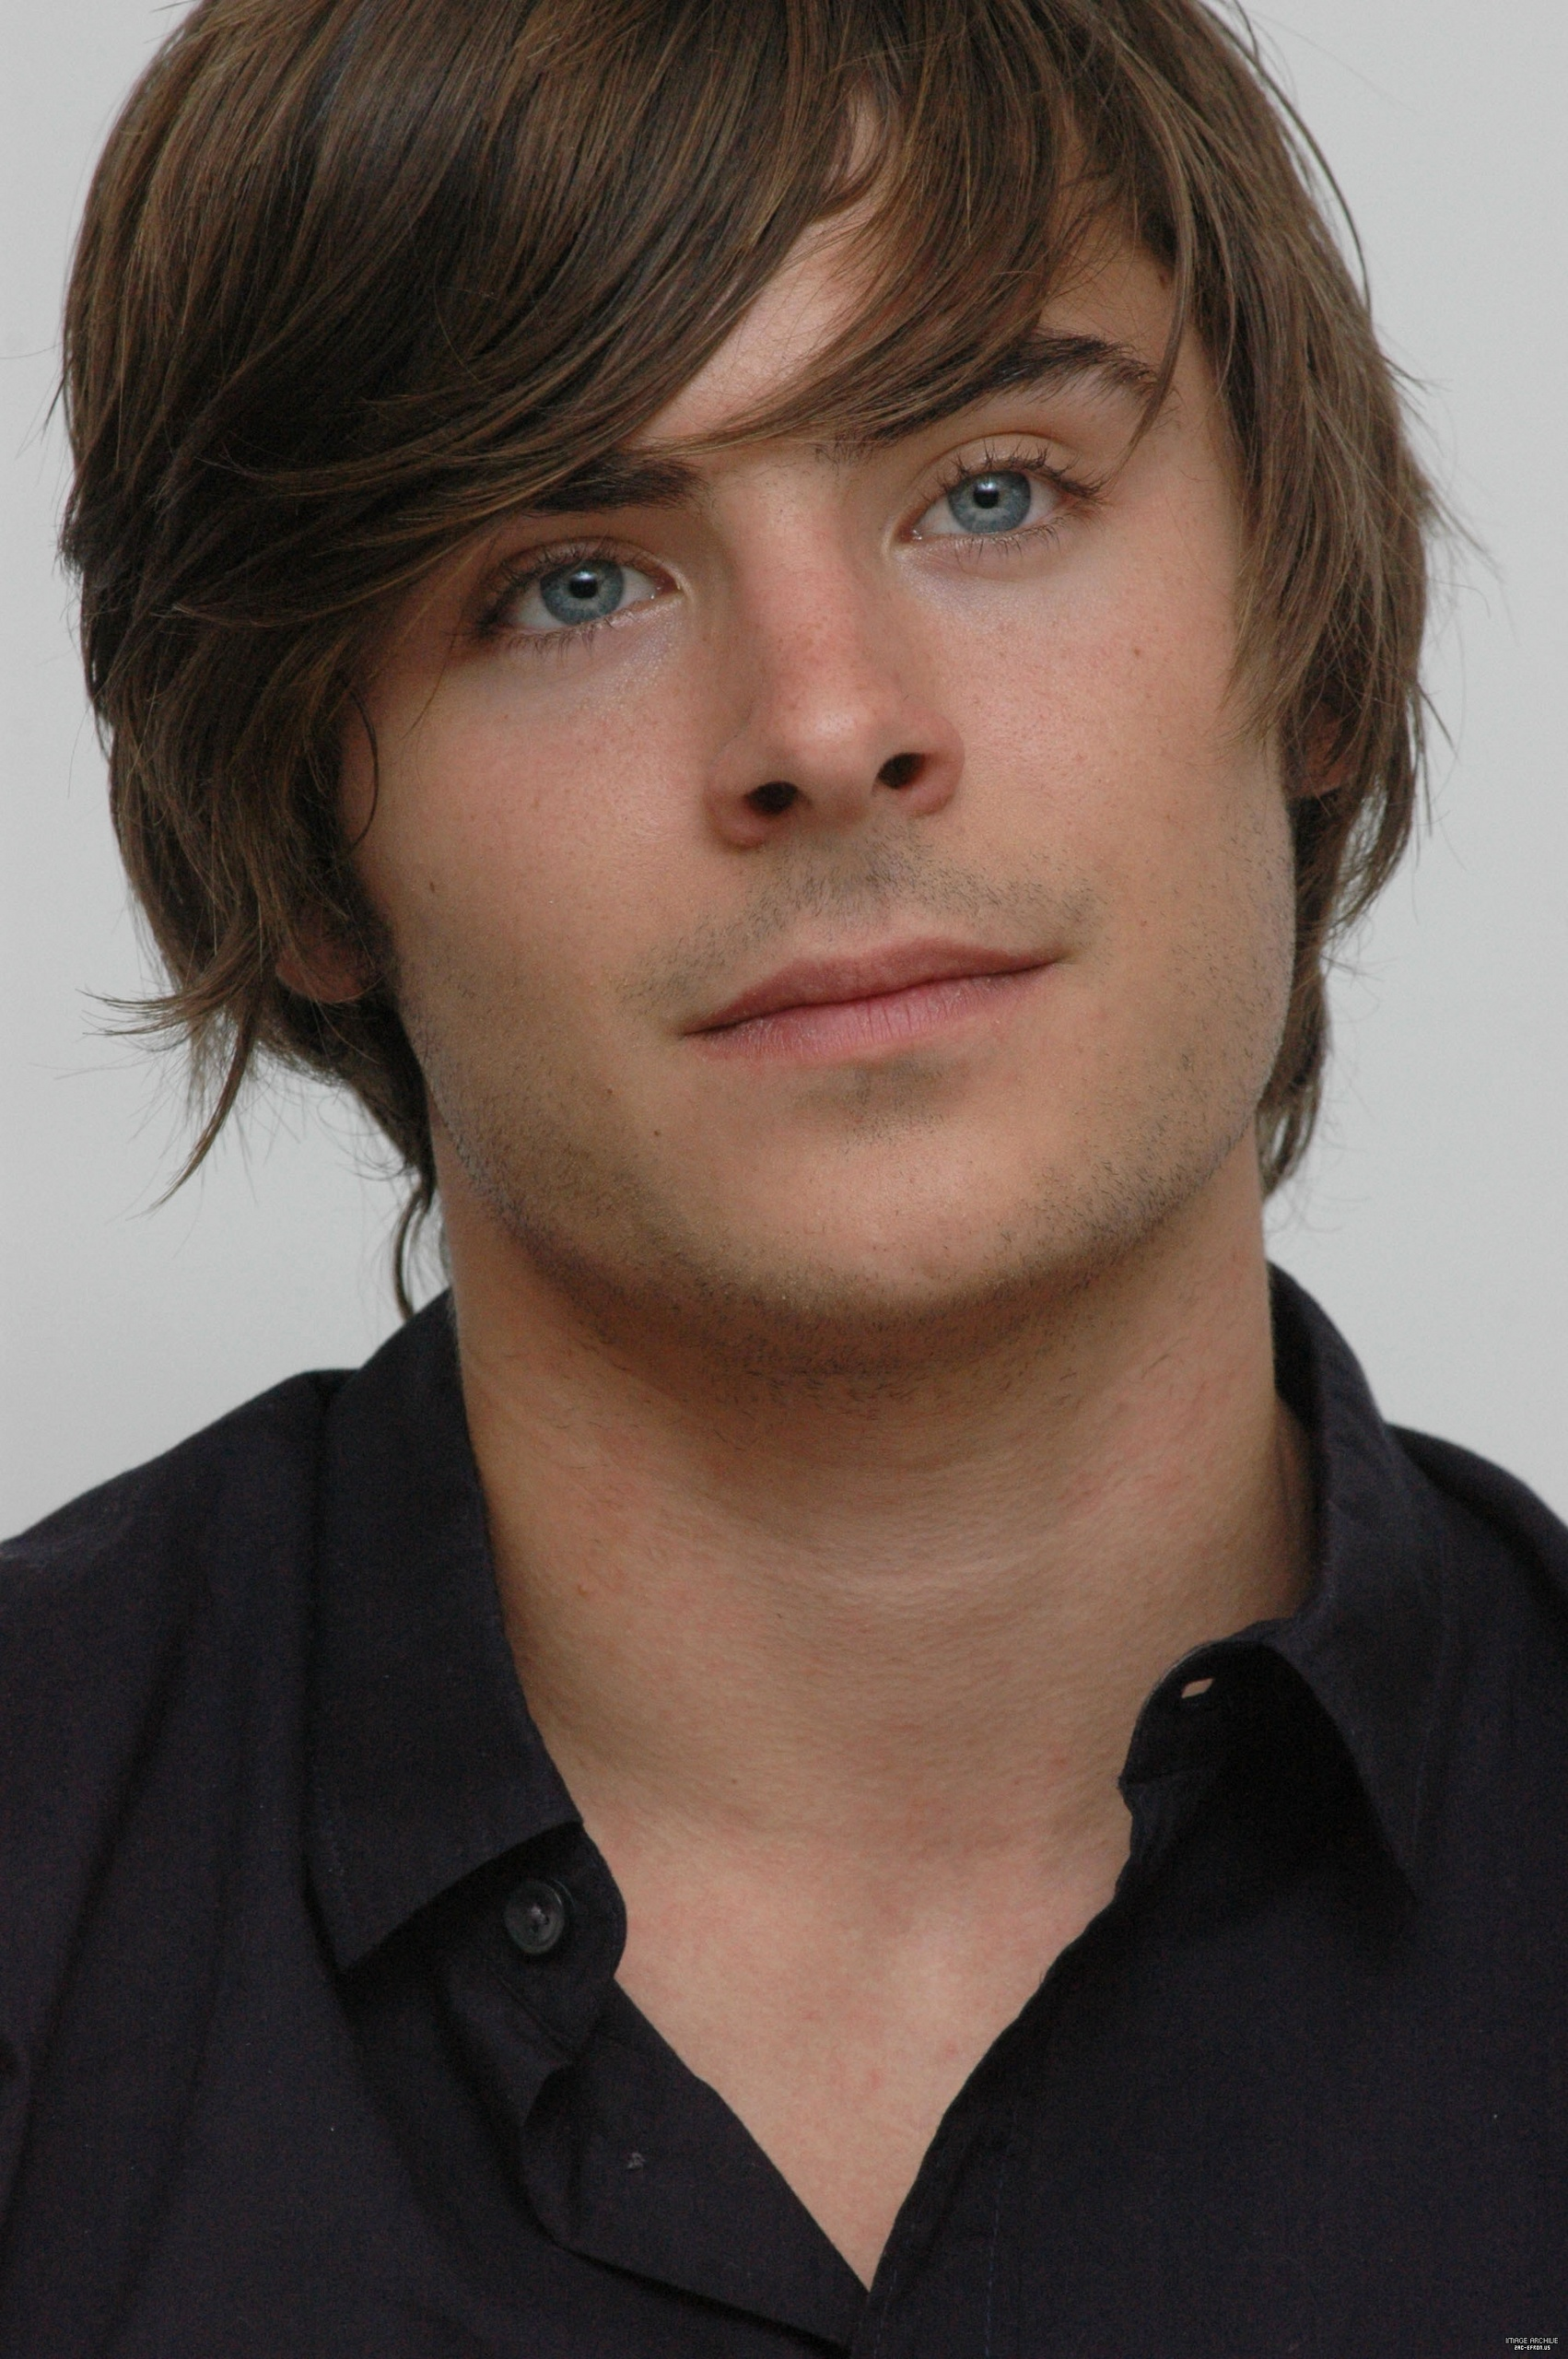 Zac Efron - Wallpaper Colection